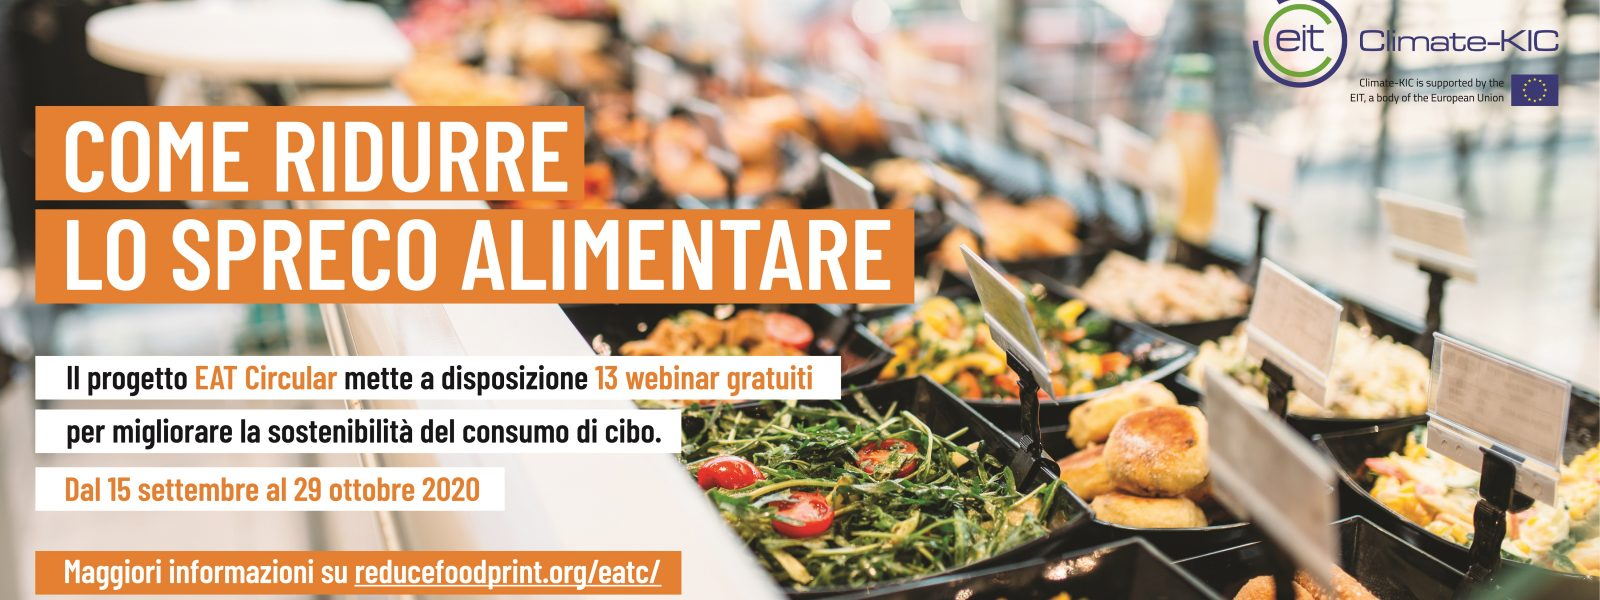 EAT-Circular - Save it for Good! 3 webinar